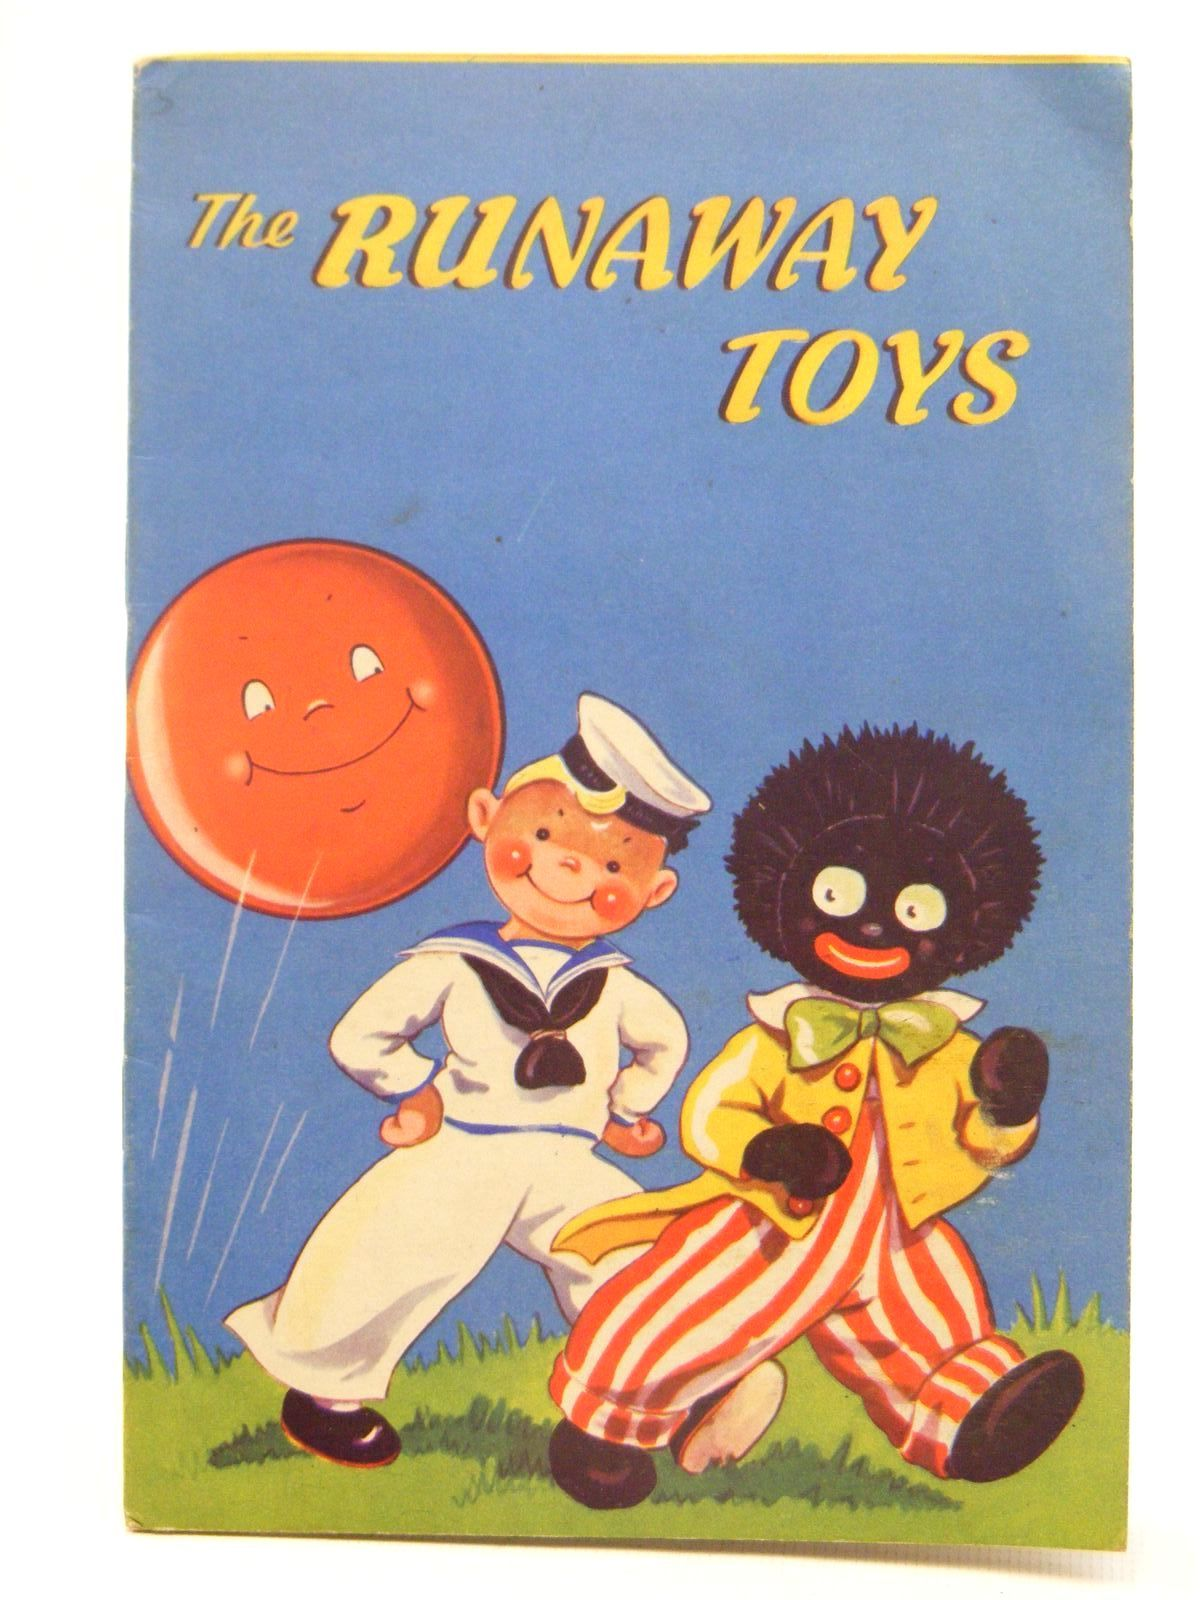 Photo of THE RUNAWAY TOYS published by Juvenile Productions Ltd. (STOCK CODE: 2124902)  for sale by Stella & Rose's Books